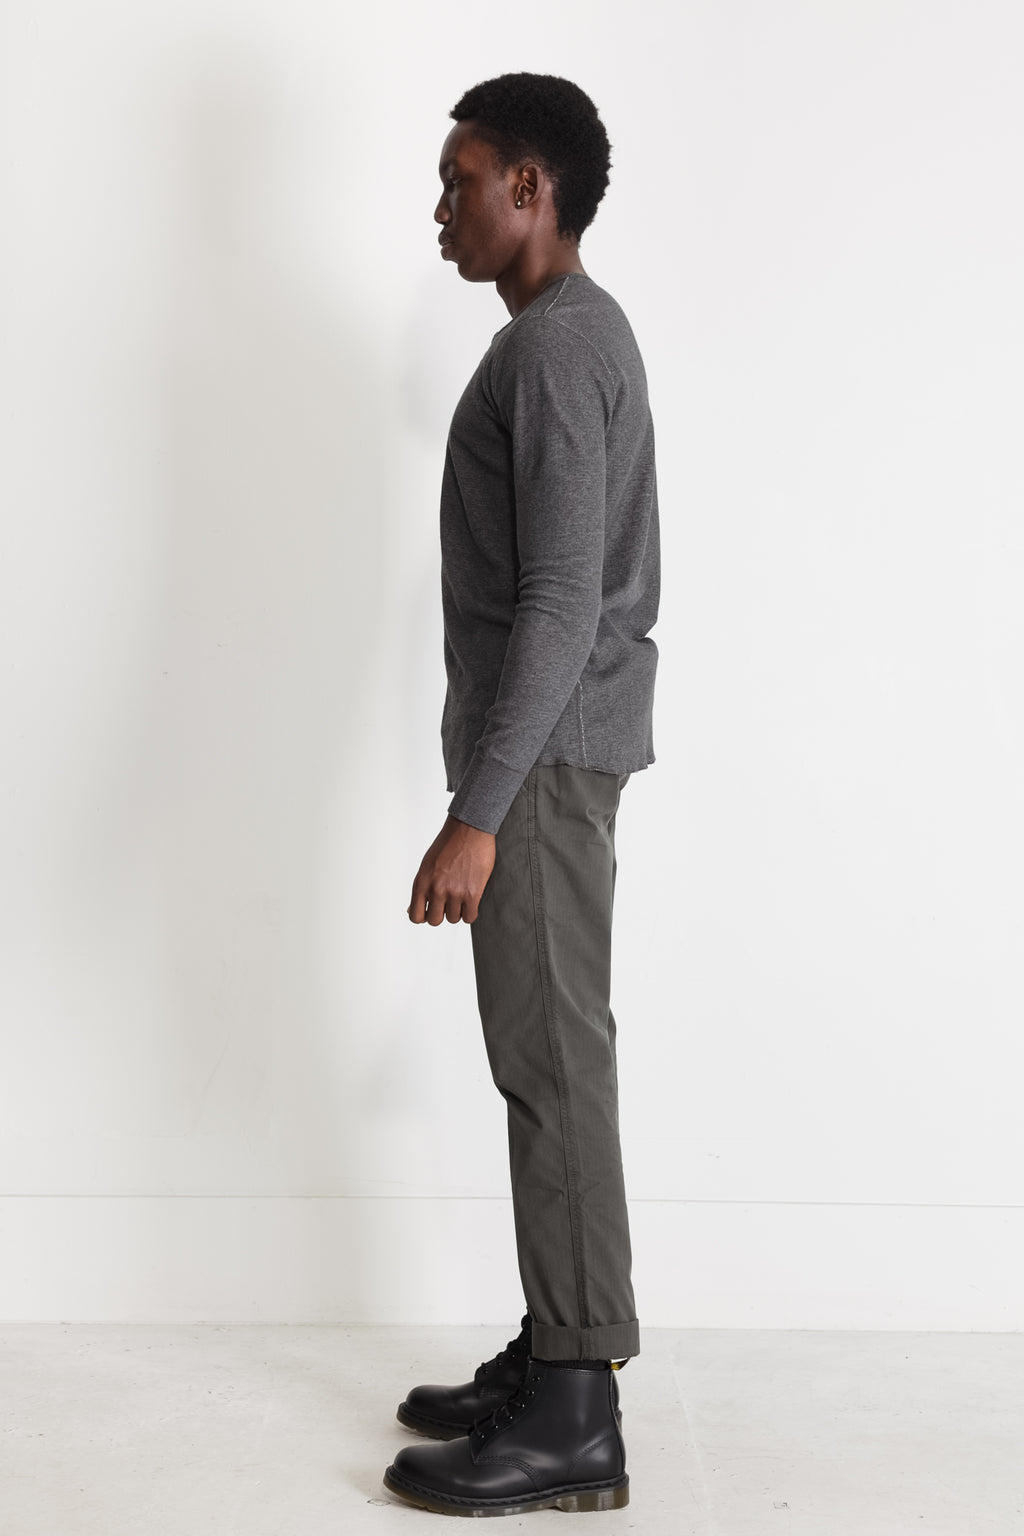 mesh thermal henley in melange charcoal 04